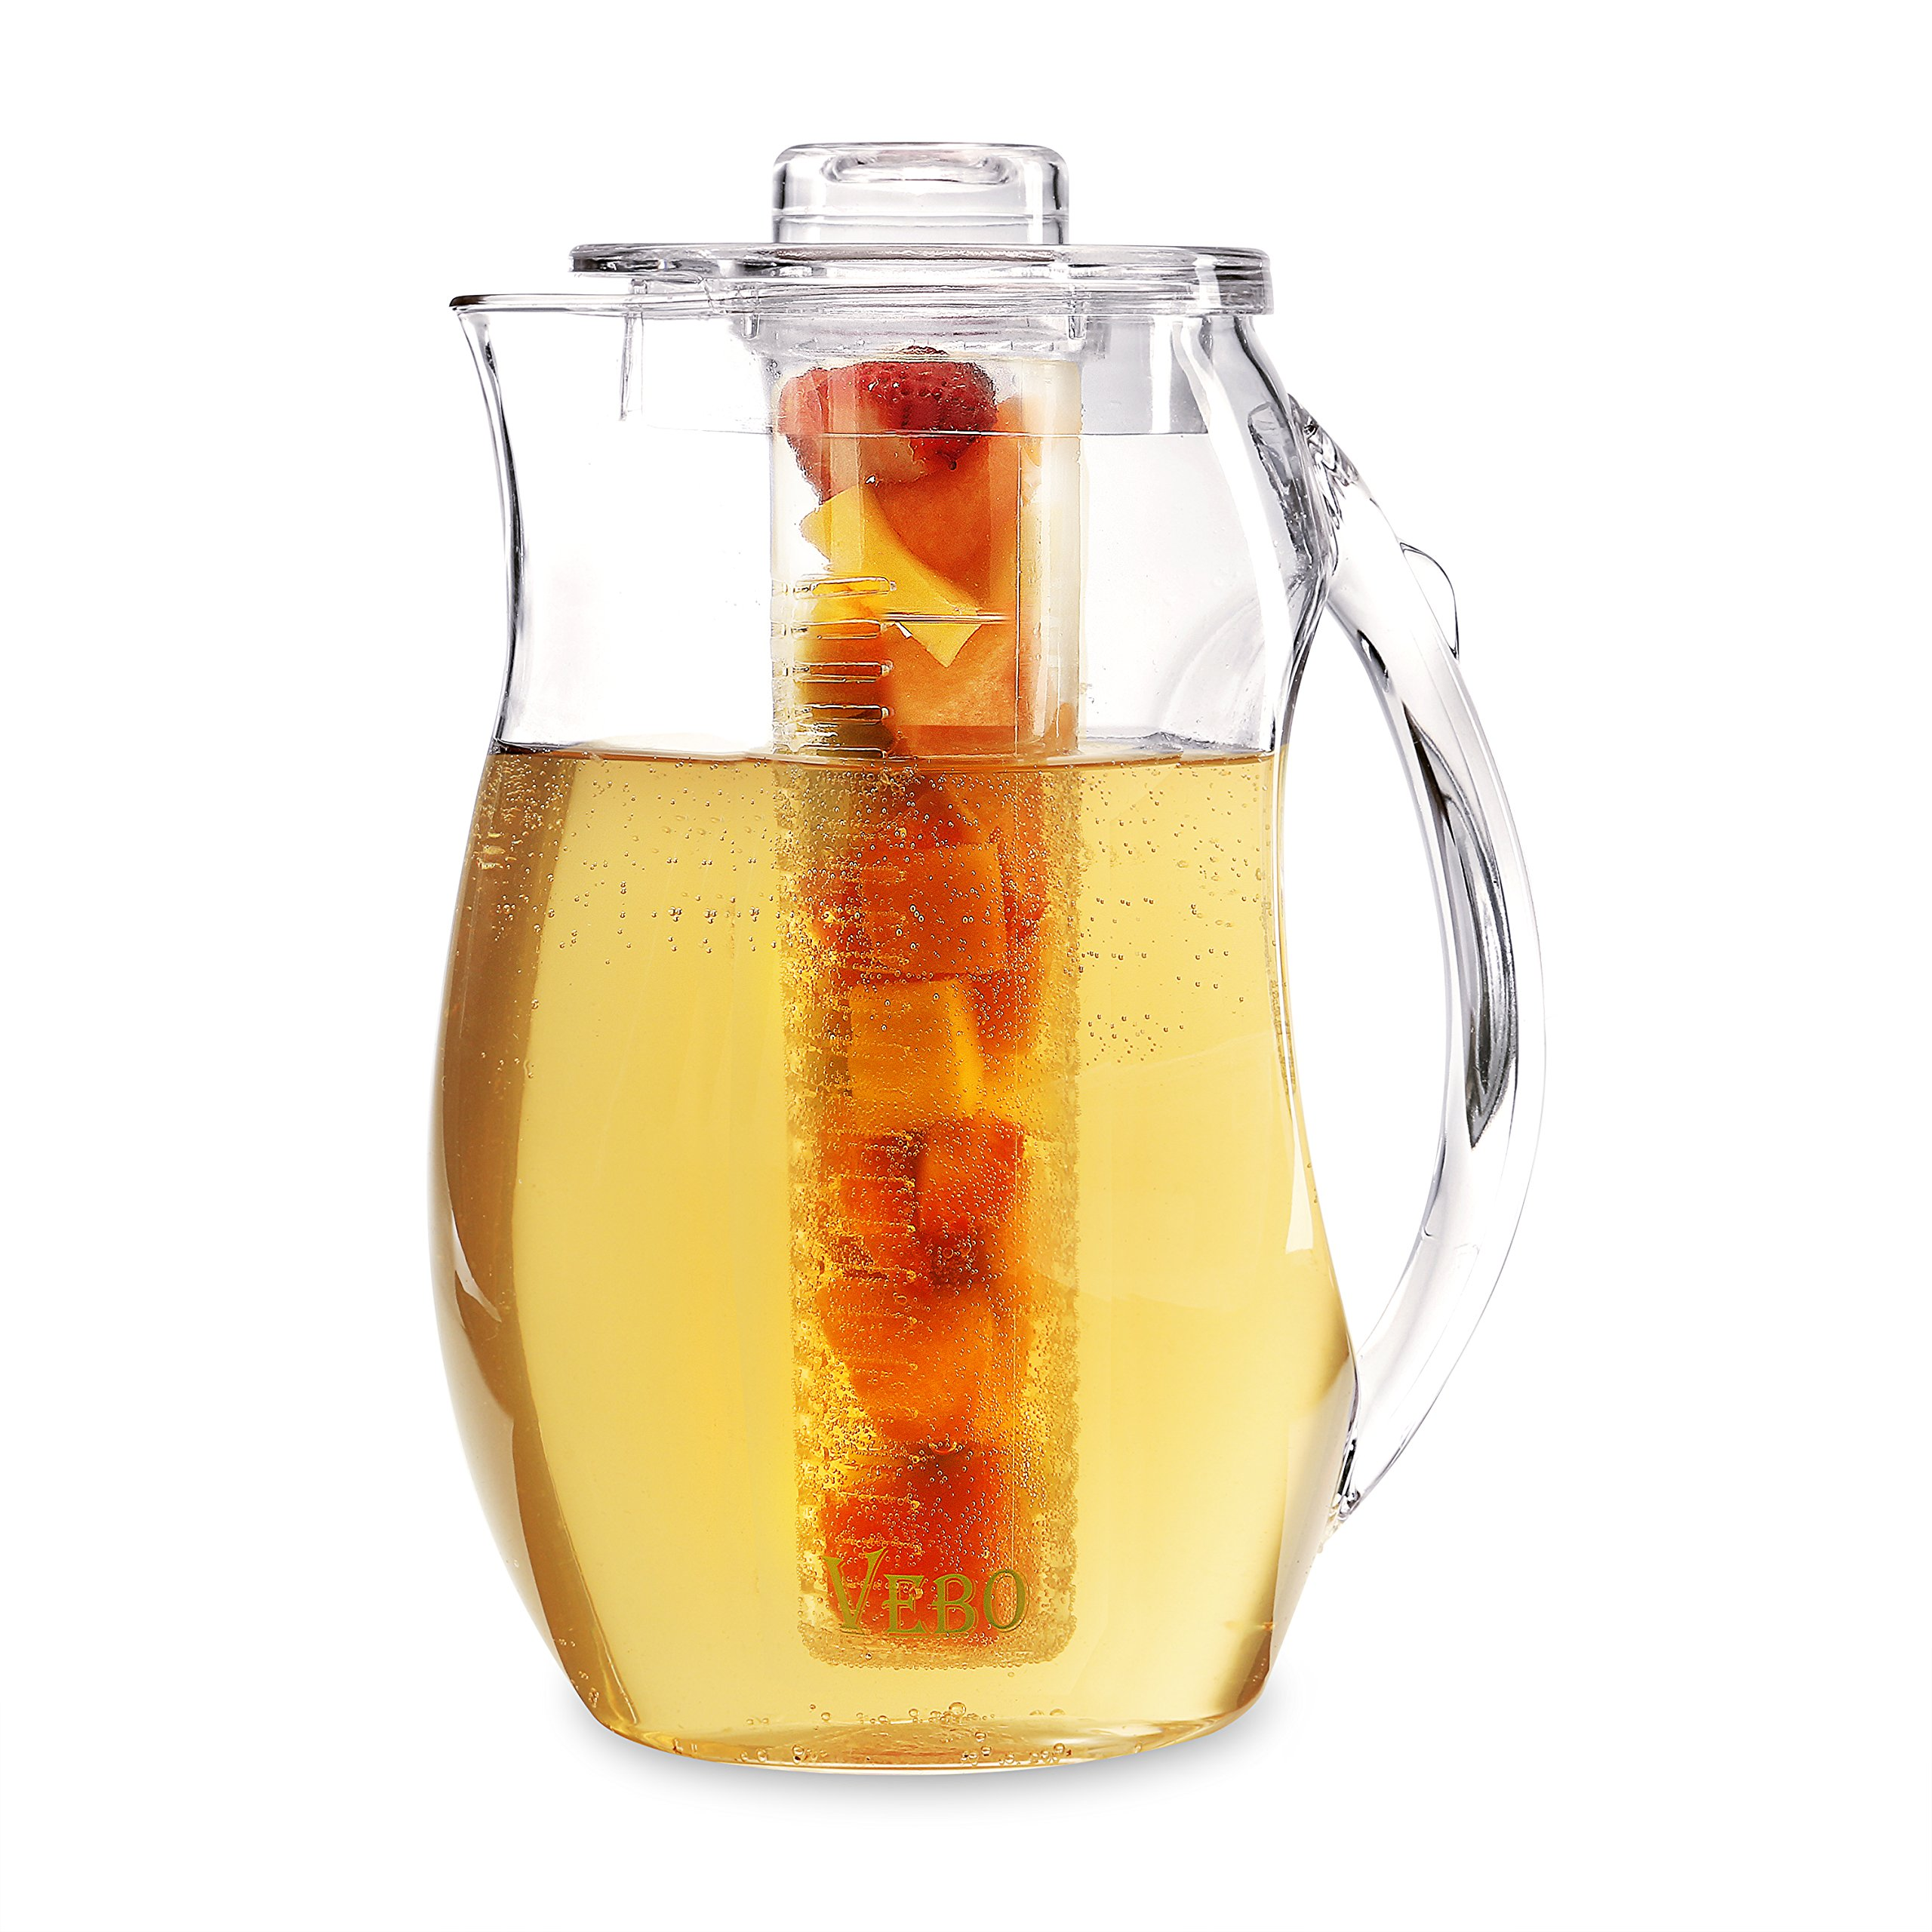 VeBo Tea and Fruit Infusion Pitcher With Ice Core Rod - 2.9 Quart Water Pitcher Infuser by VEBO (Image #5)